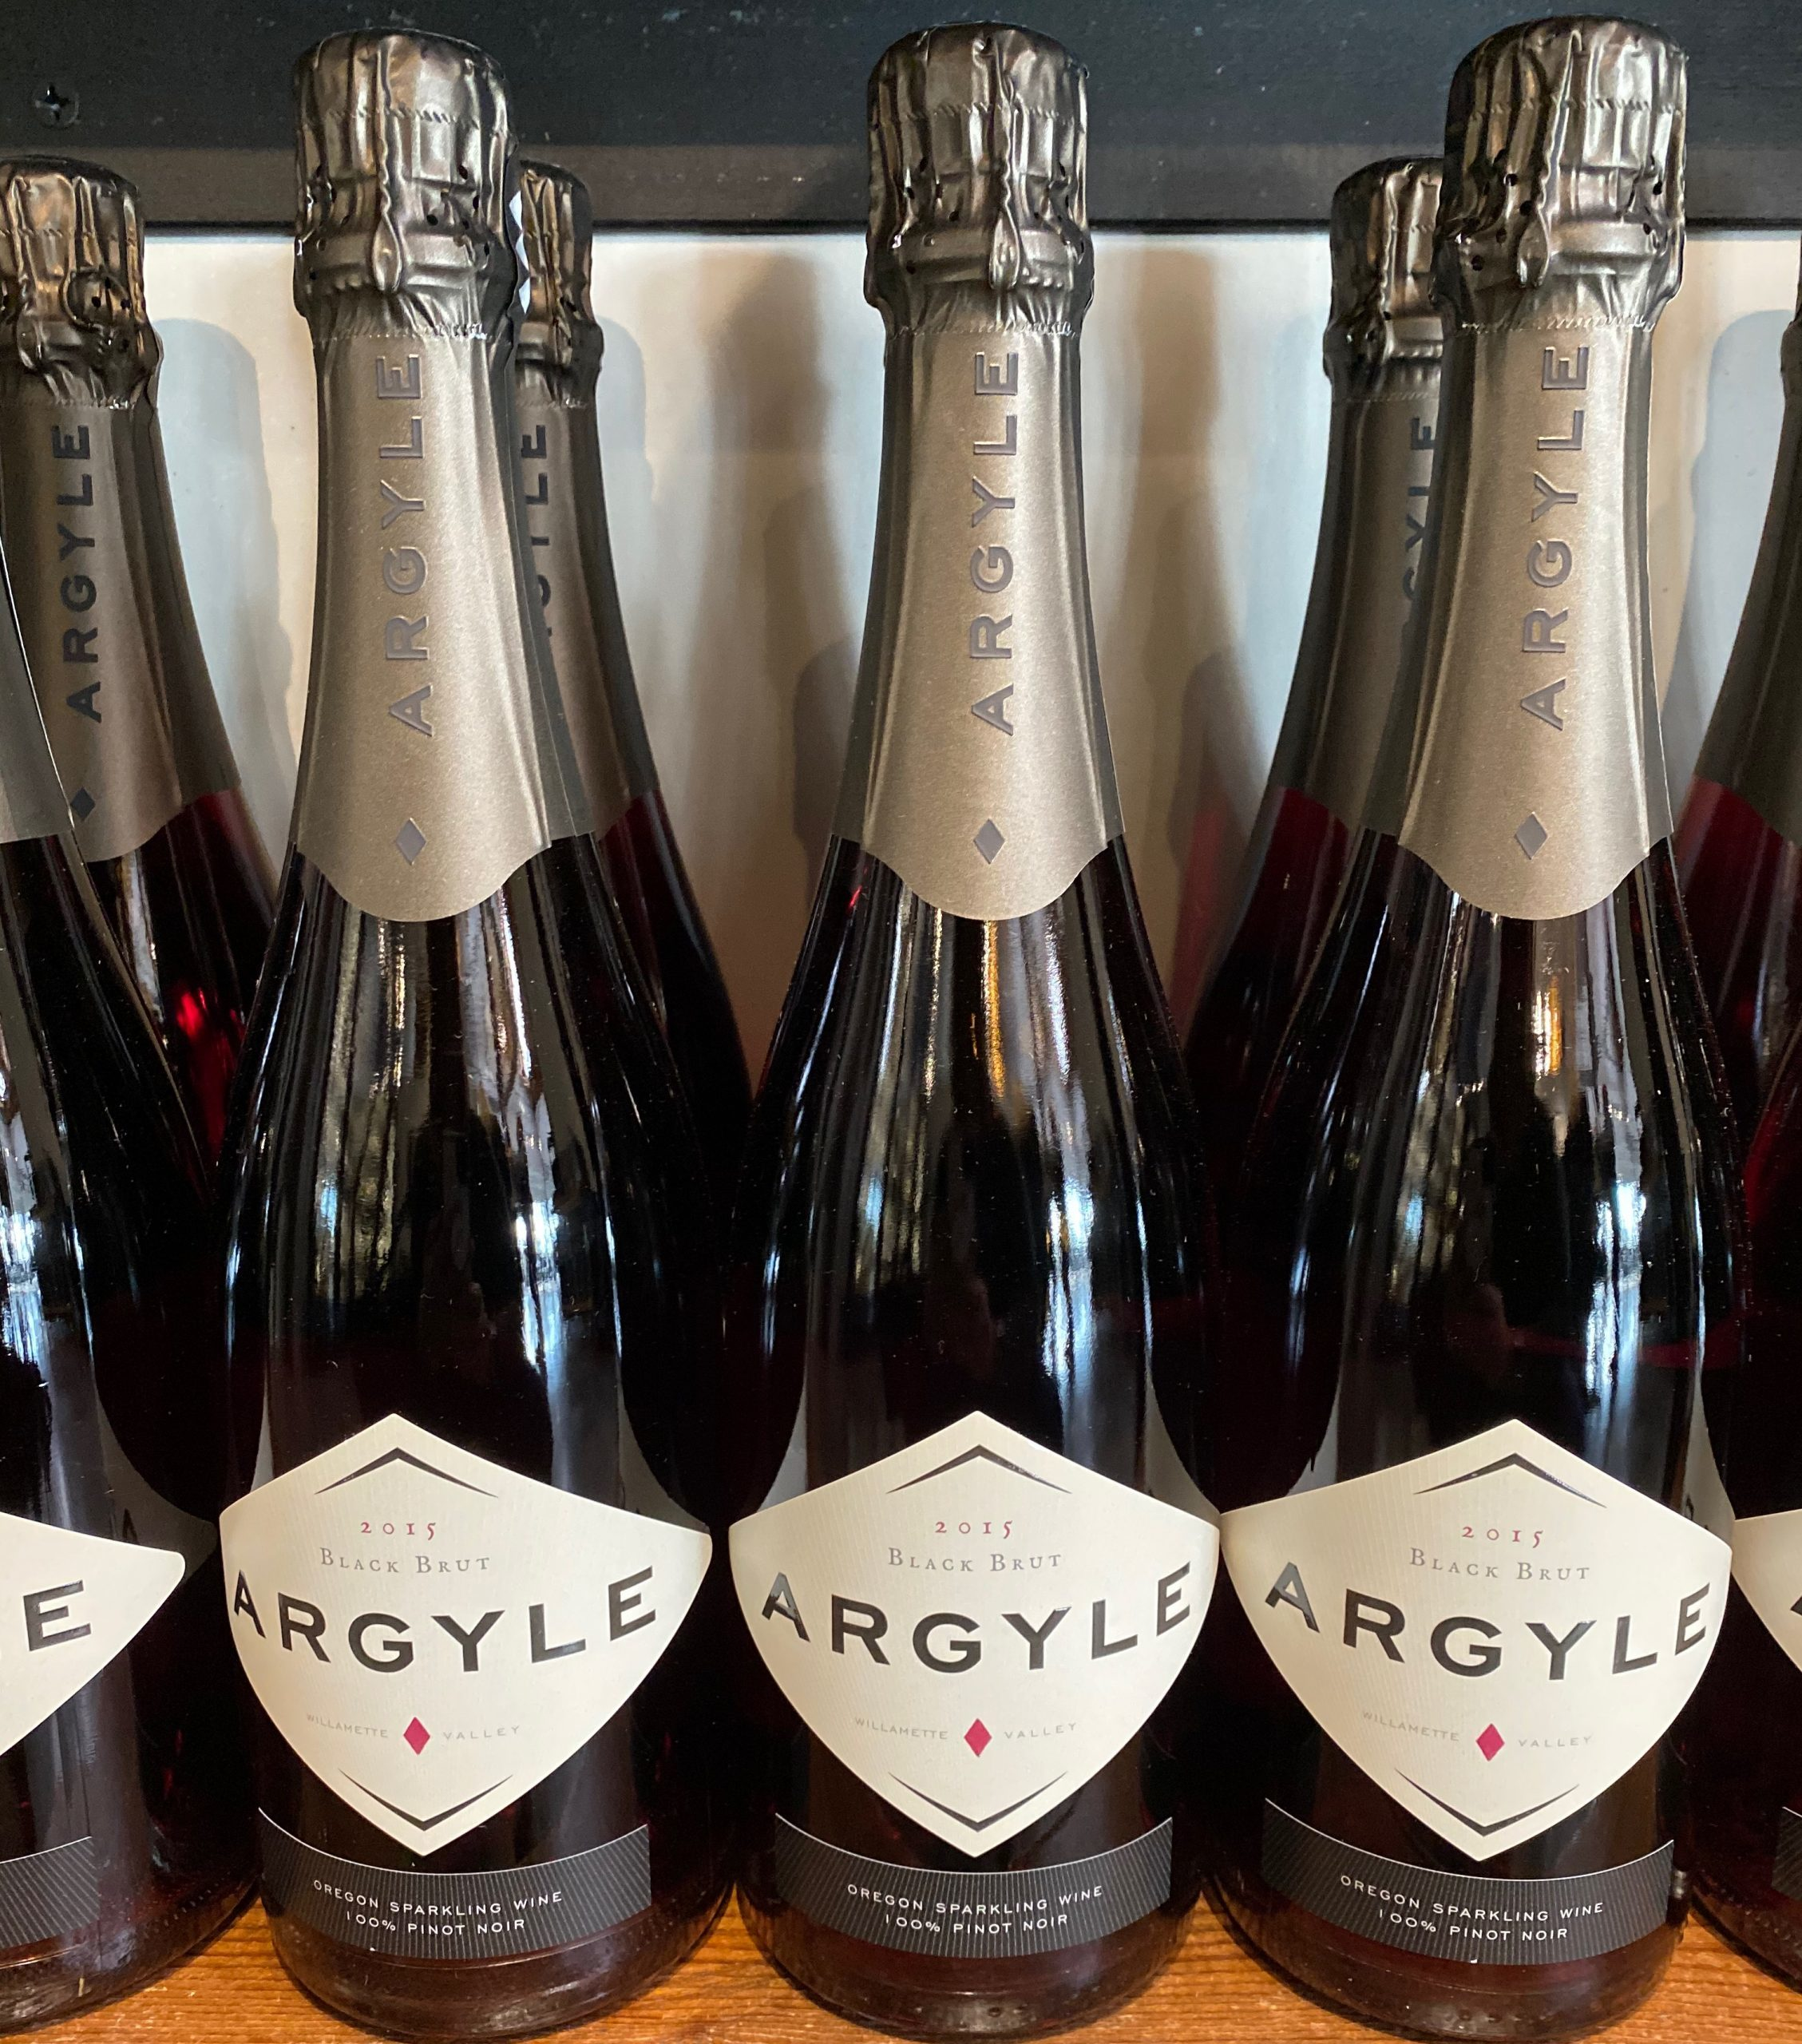 2015 Argyle Winery Black Brut